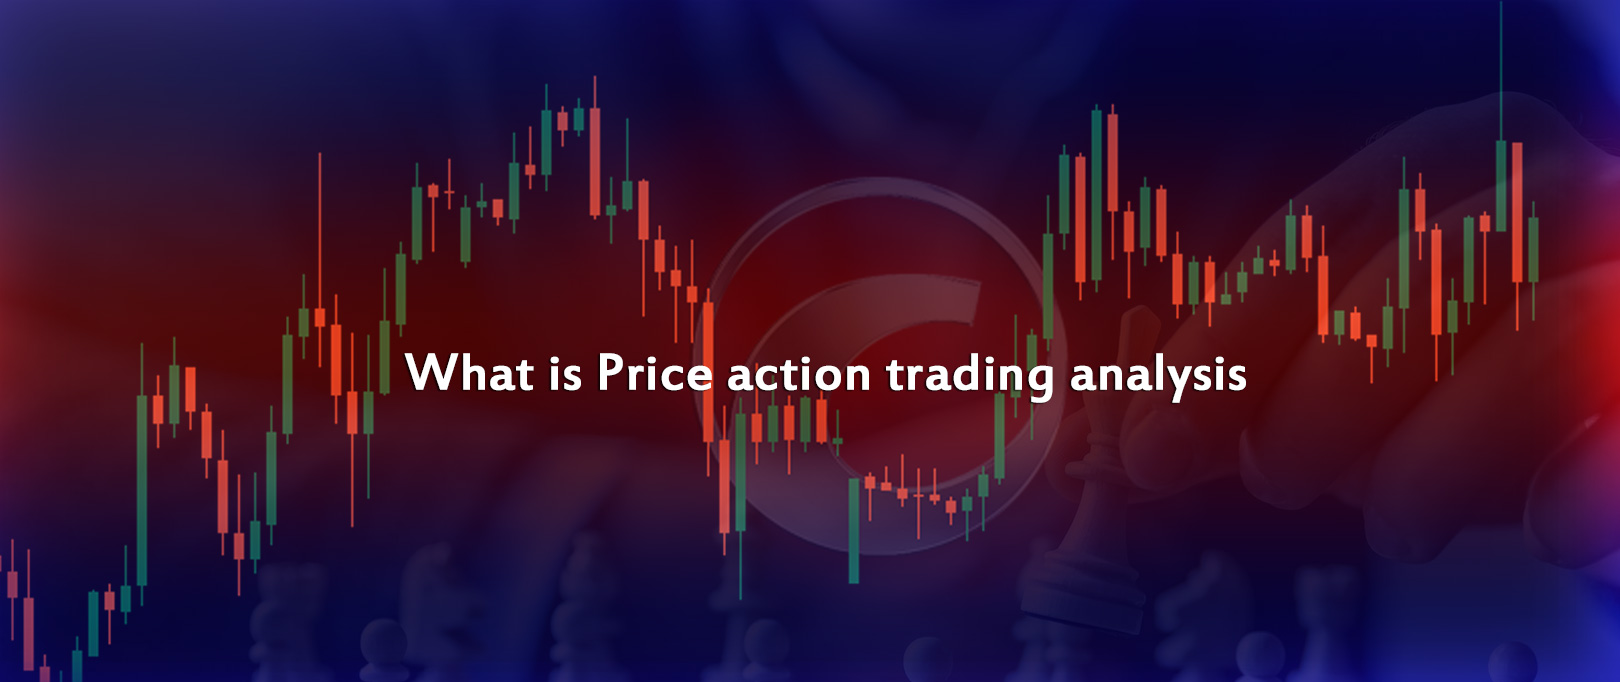 What-is-Price-action-trading-analysis-by-Prathilaba